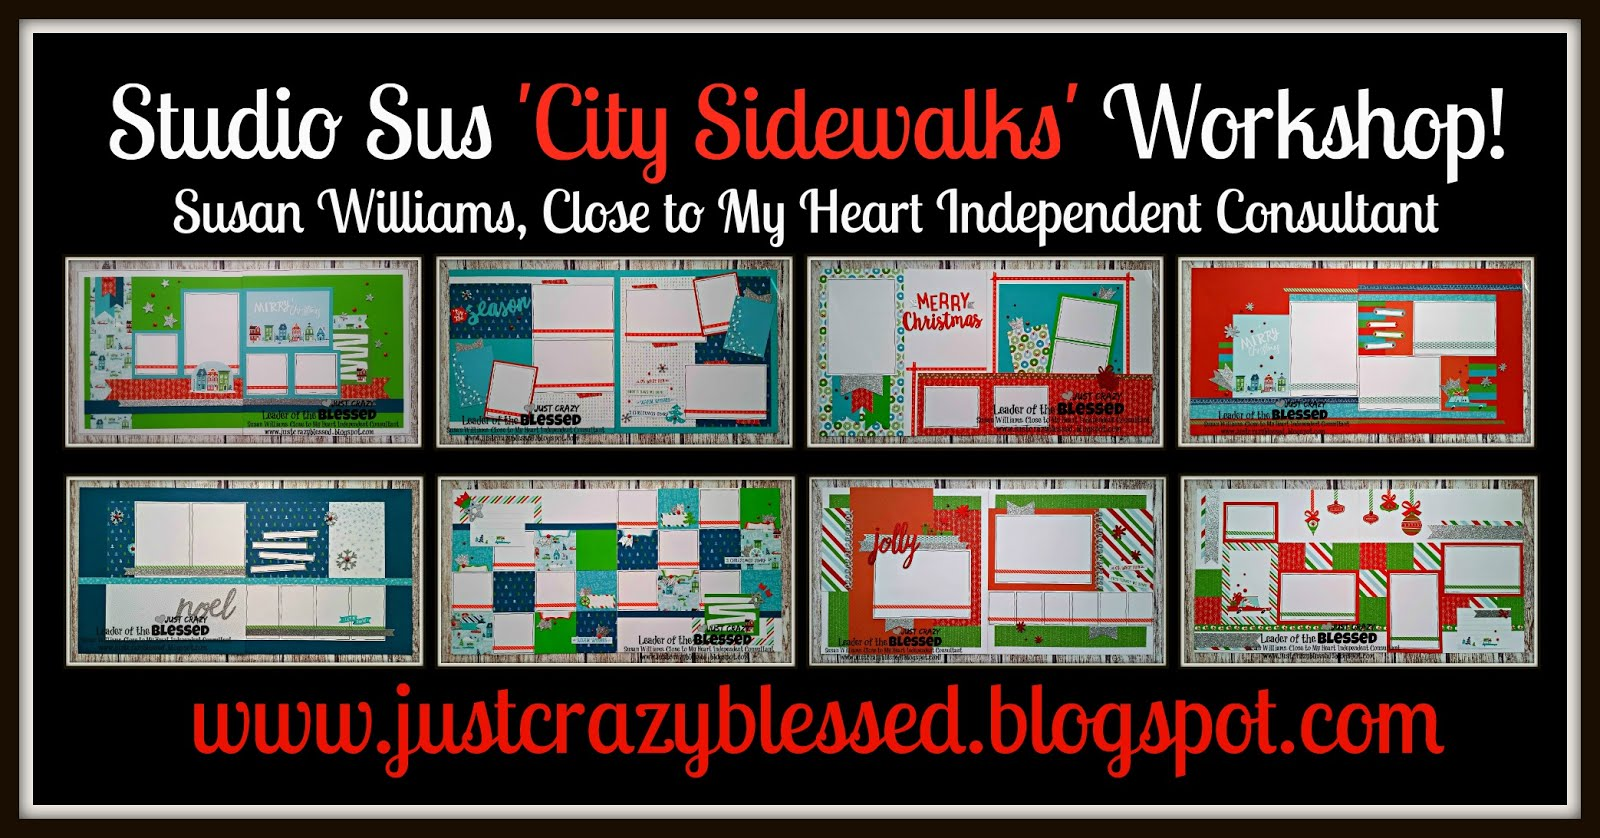 'City Sidewalks' Workshop!